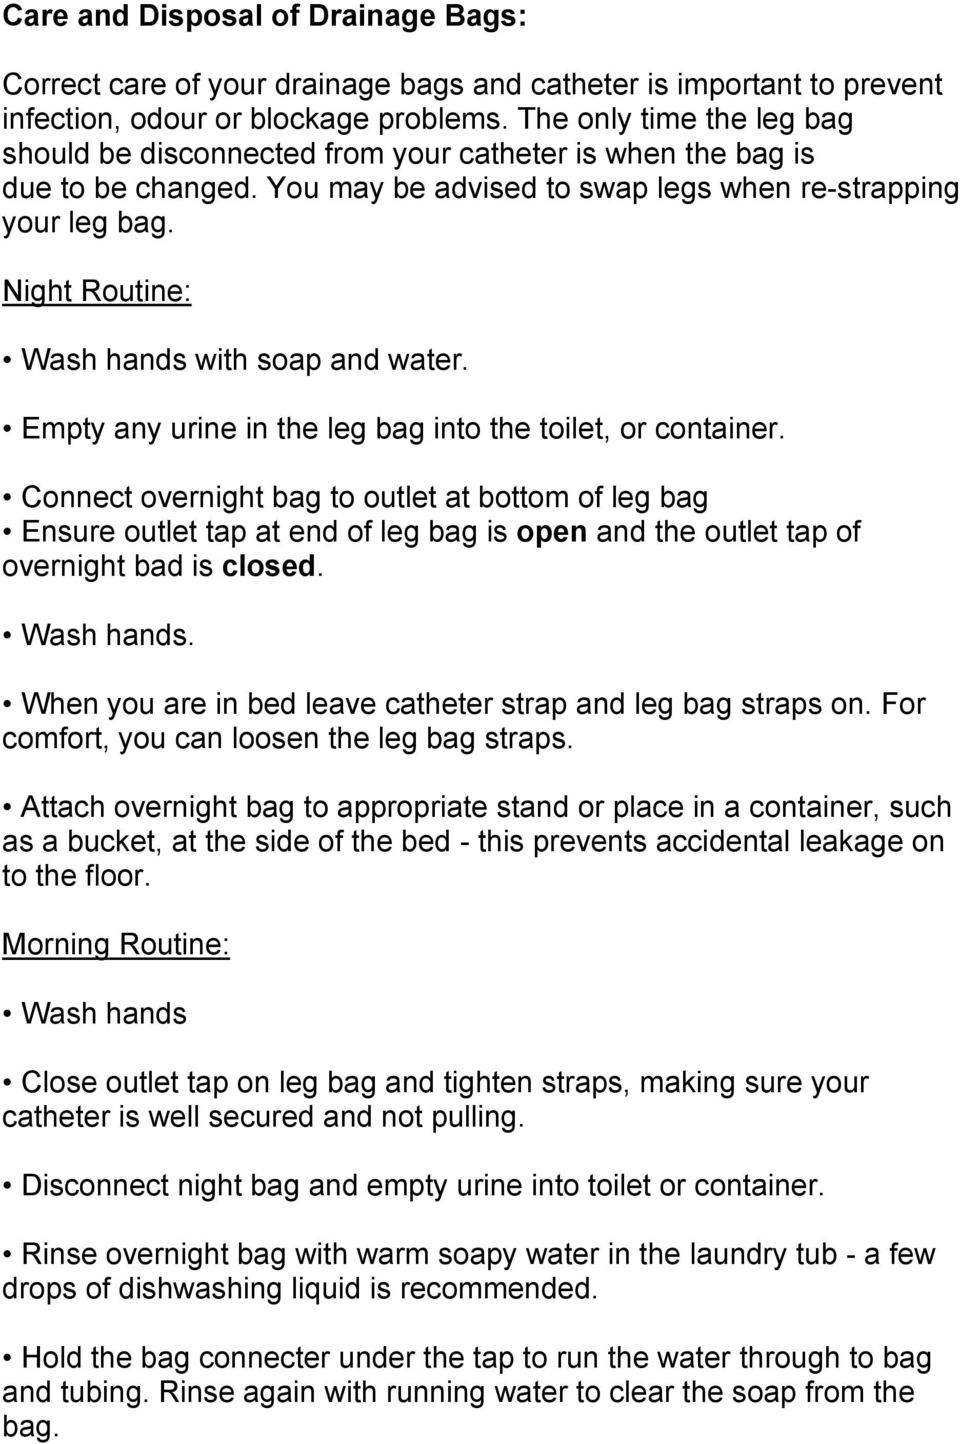 Night Routine: Wash hands with soap and water. Empty any urine in the leg bag into the toilet, or container.